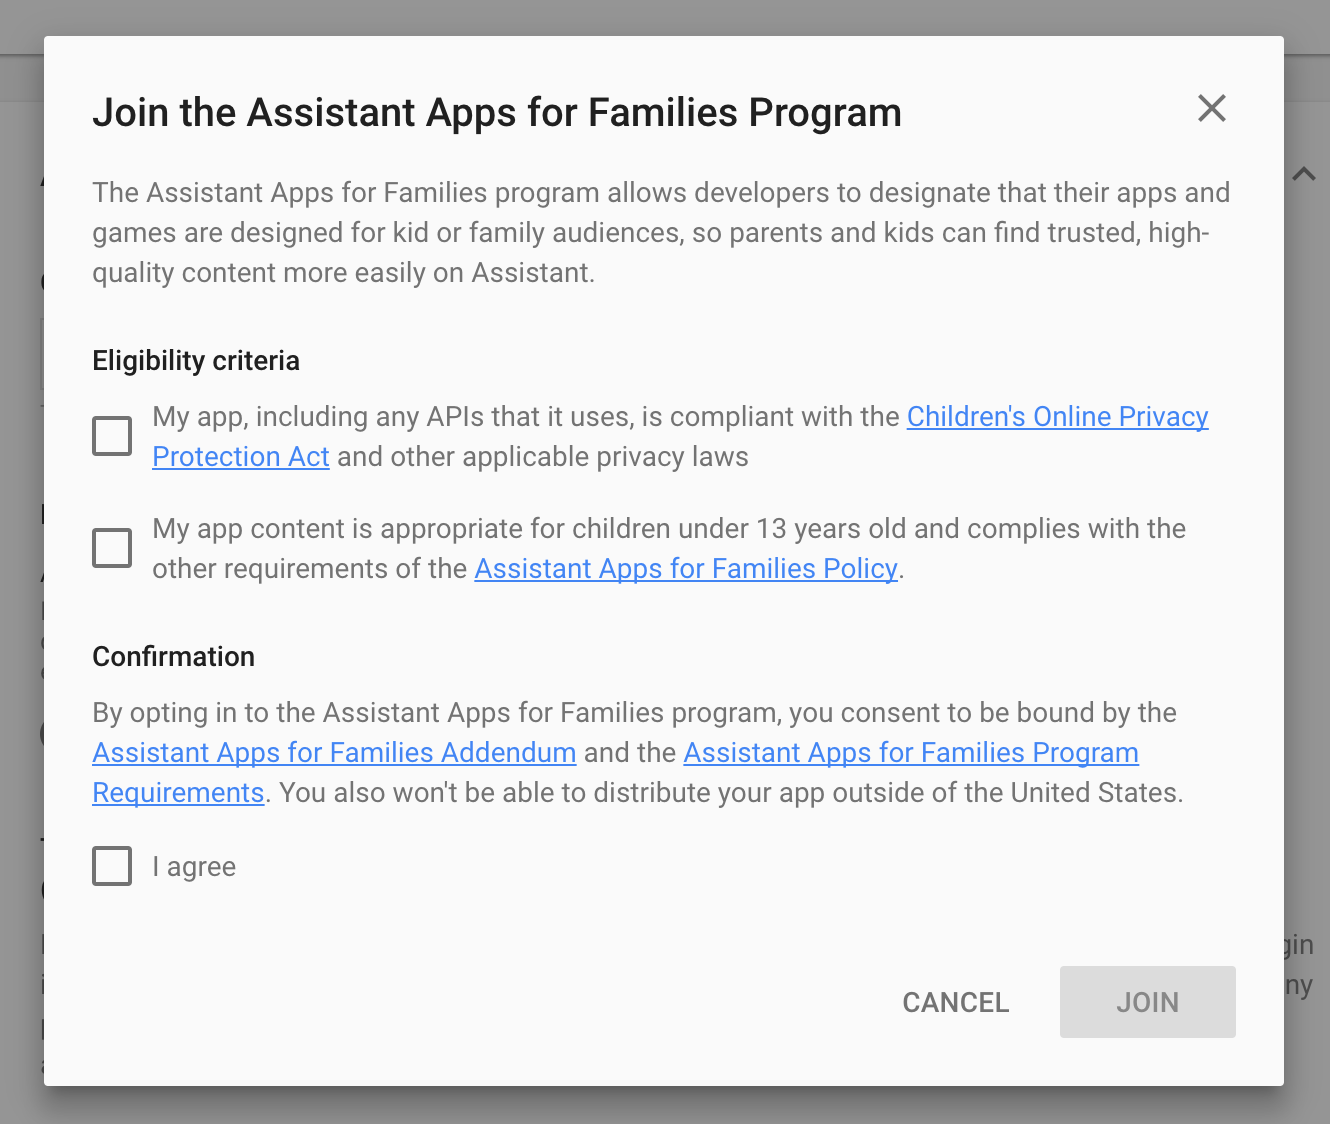 GoogleHome_Join the Assistant Apps for Families Program.png